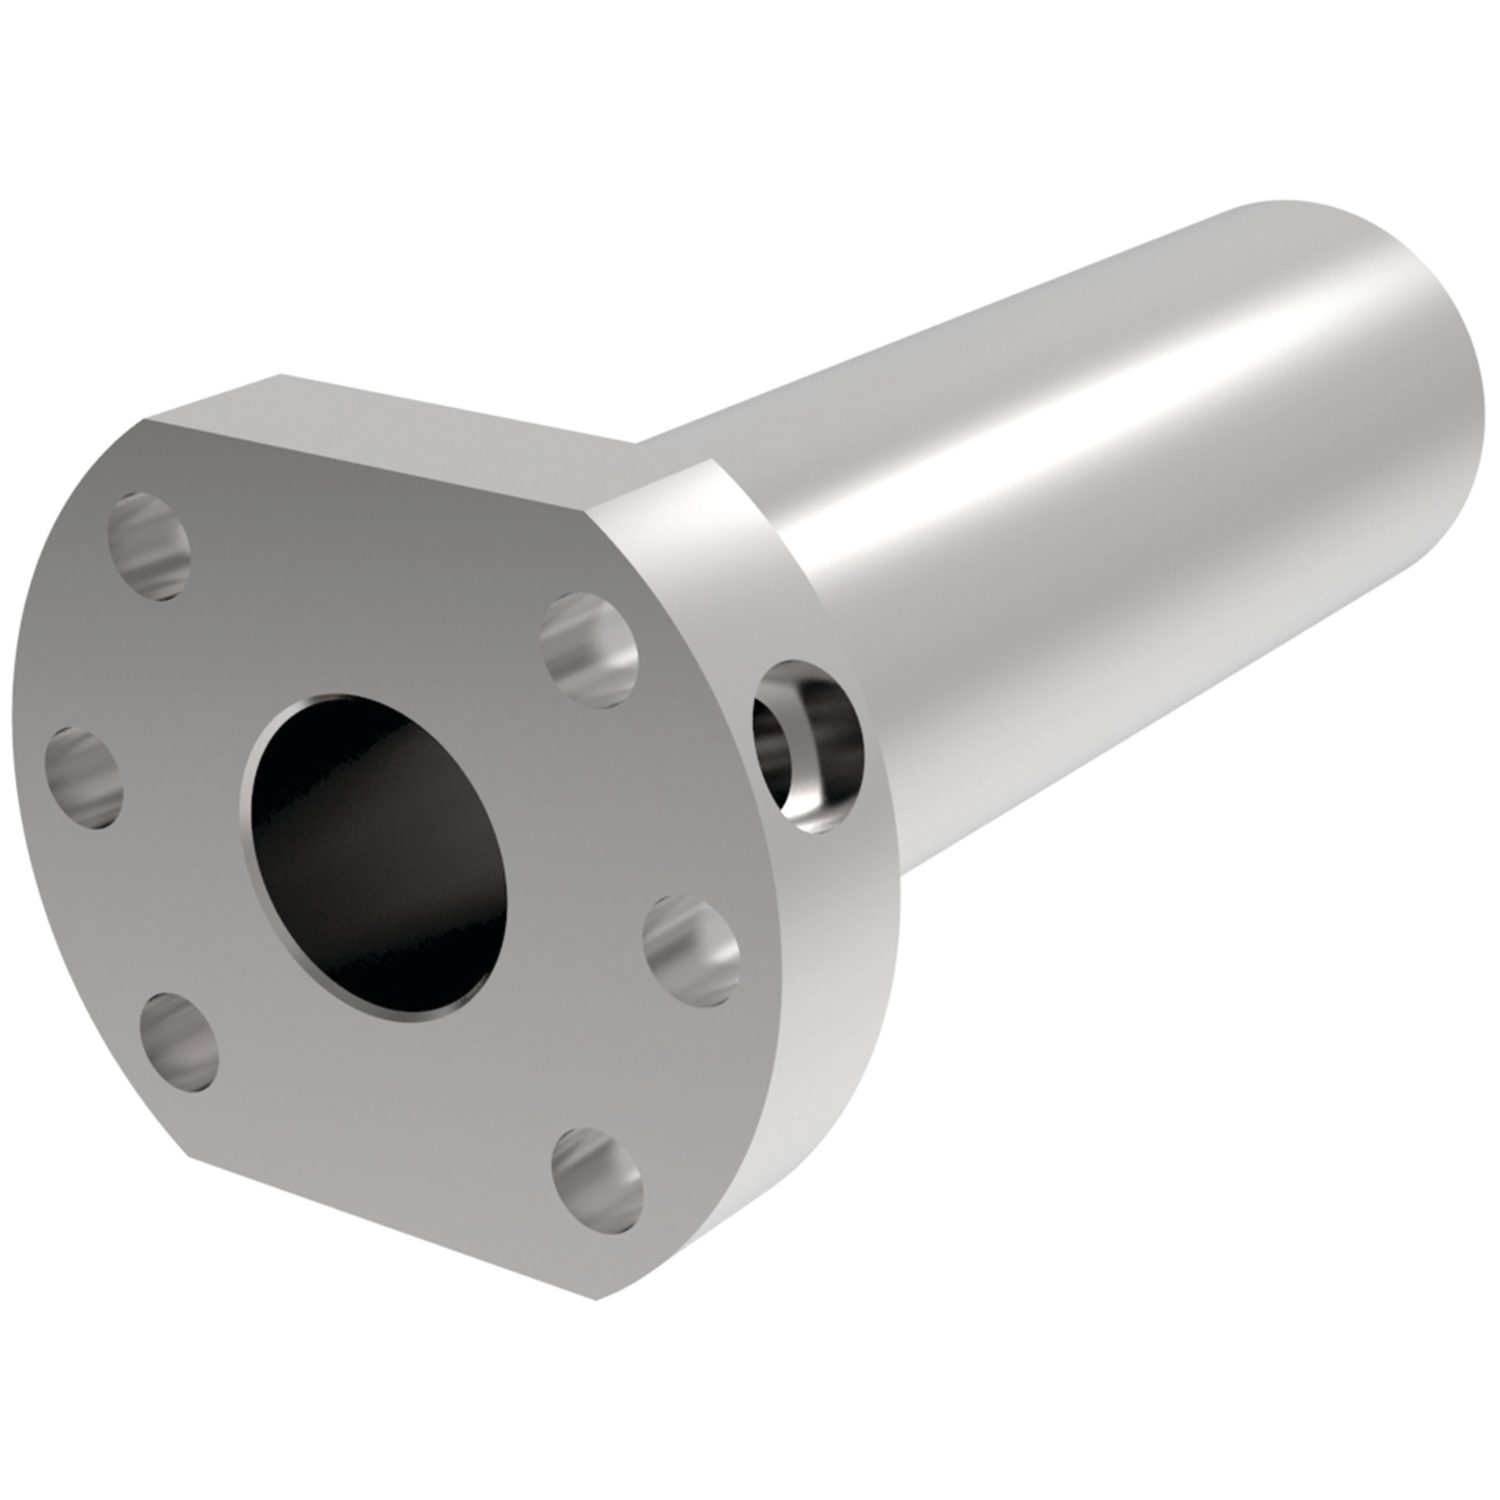 L1381.L - Left Hand Flanged Double Ball Nuts